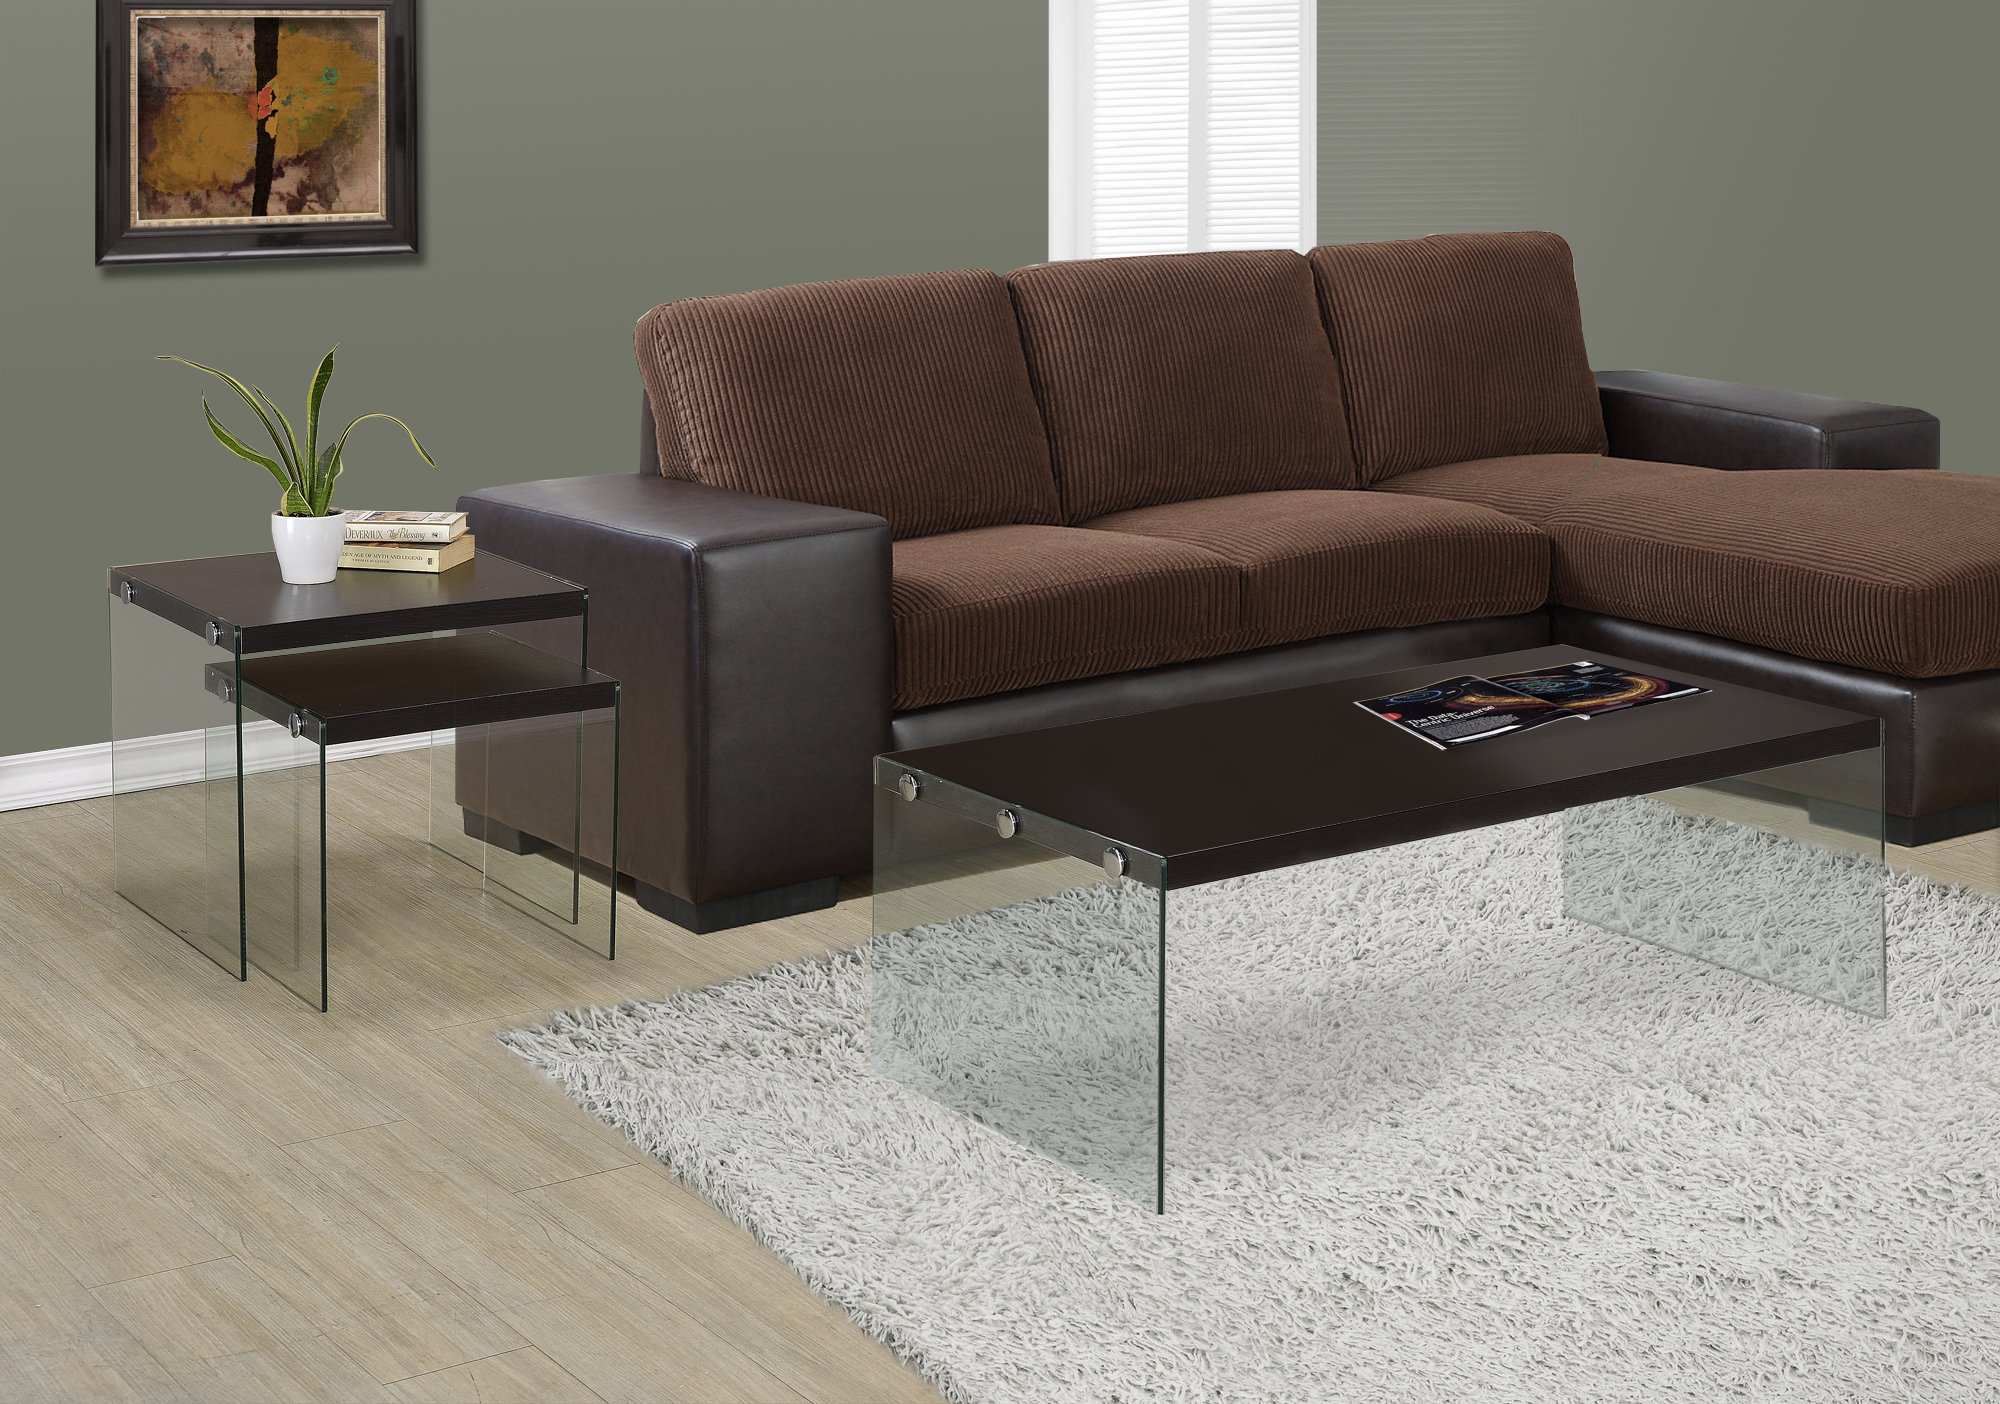 Monarch specialties  I 3280, Coffee Table, Tempered Glass, Cappuccino, 44''L